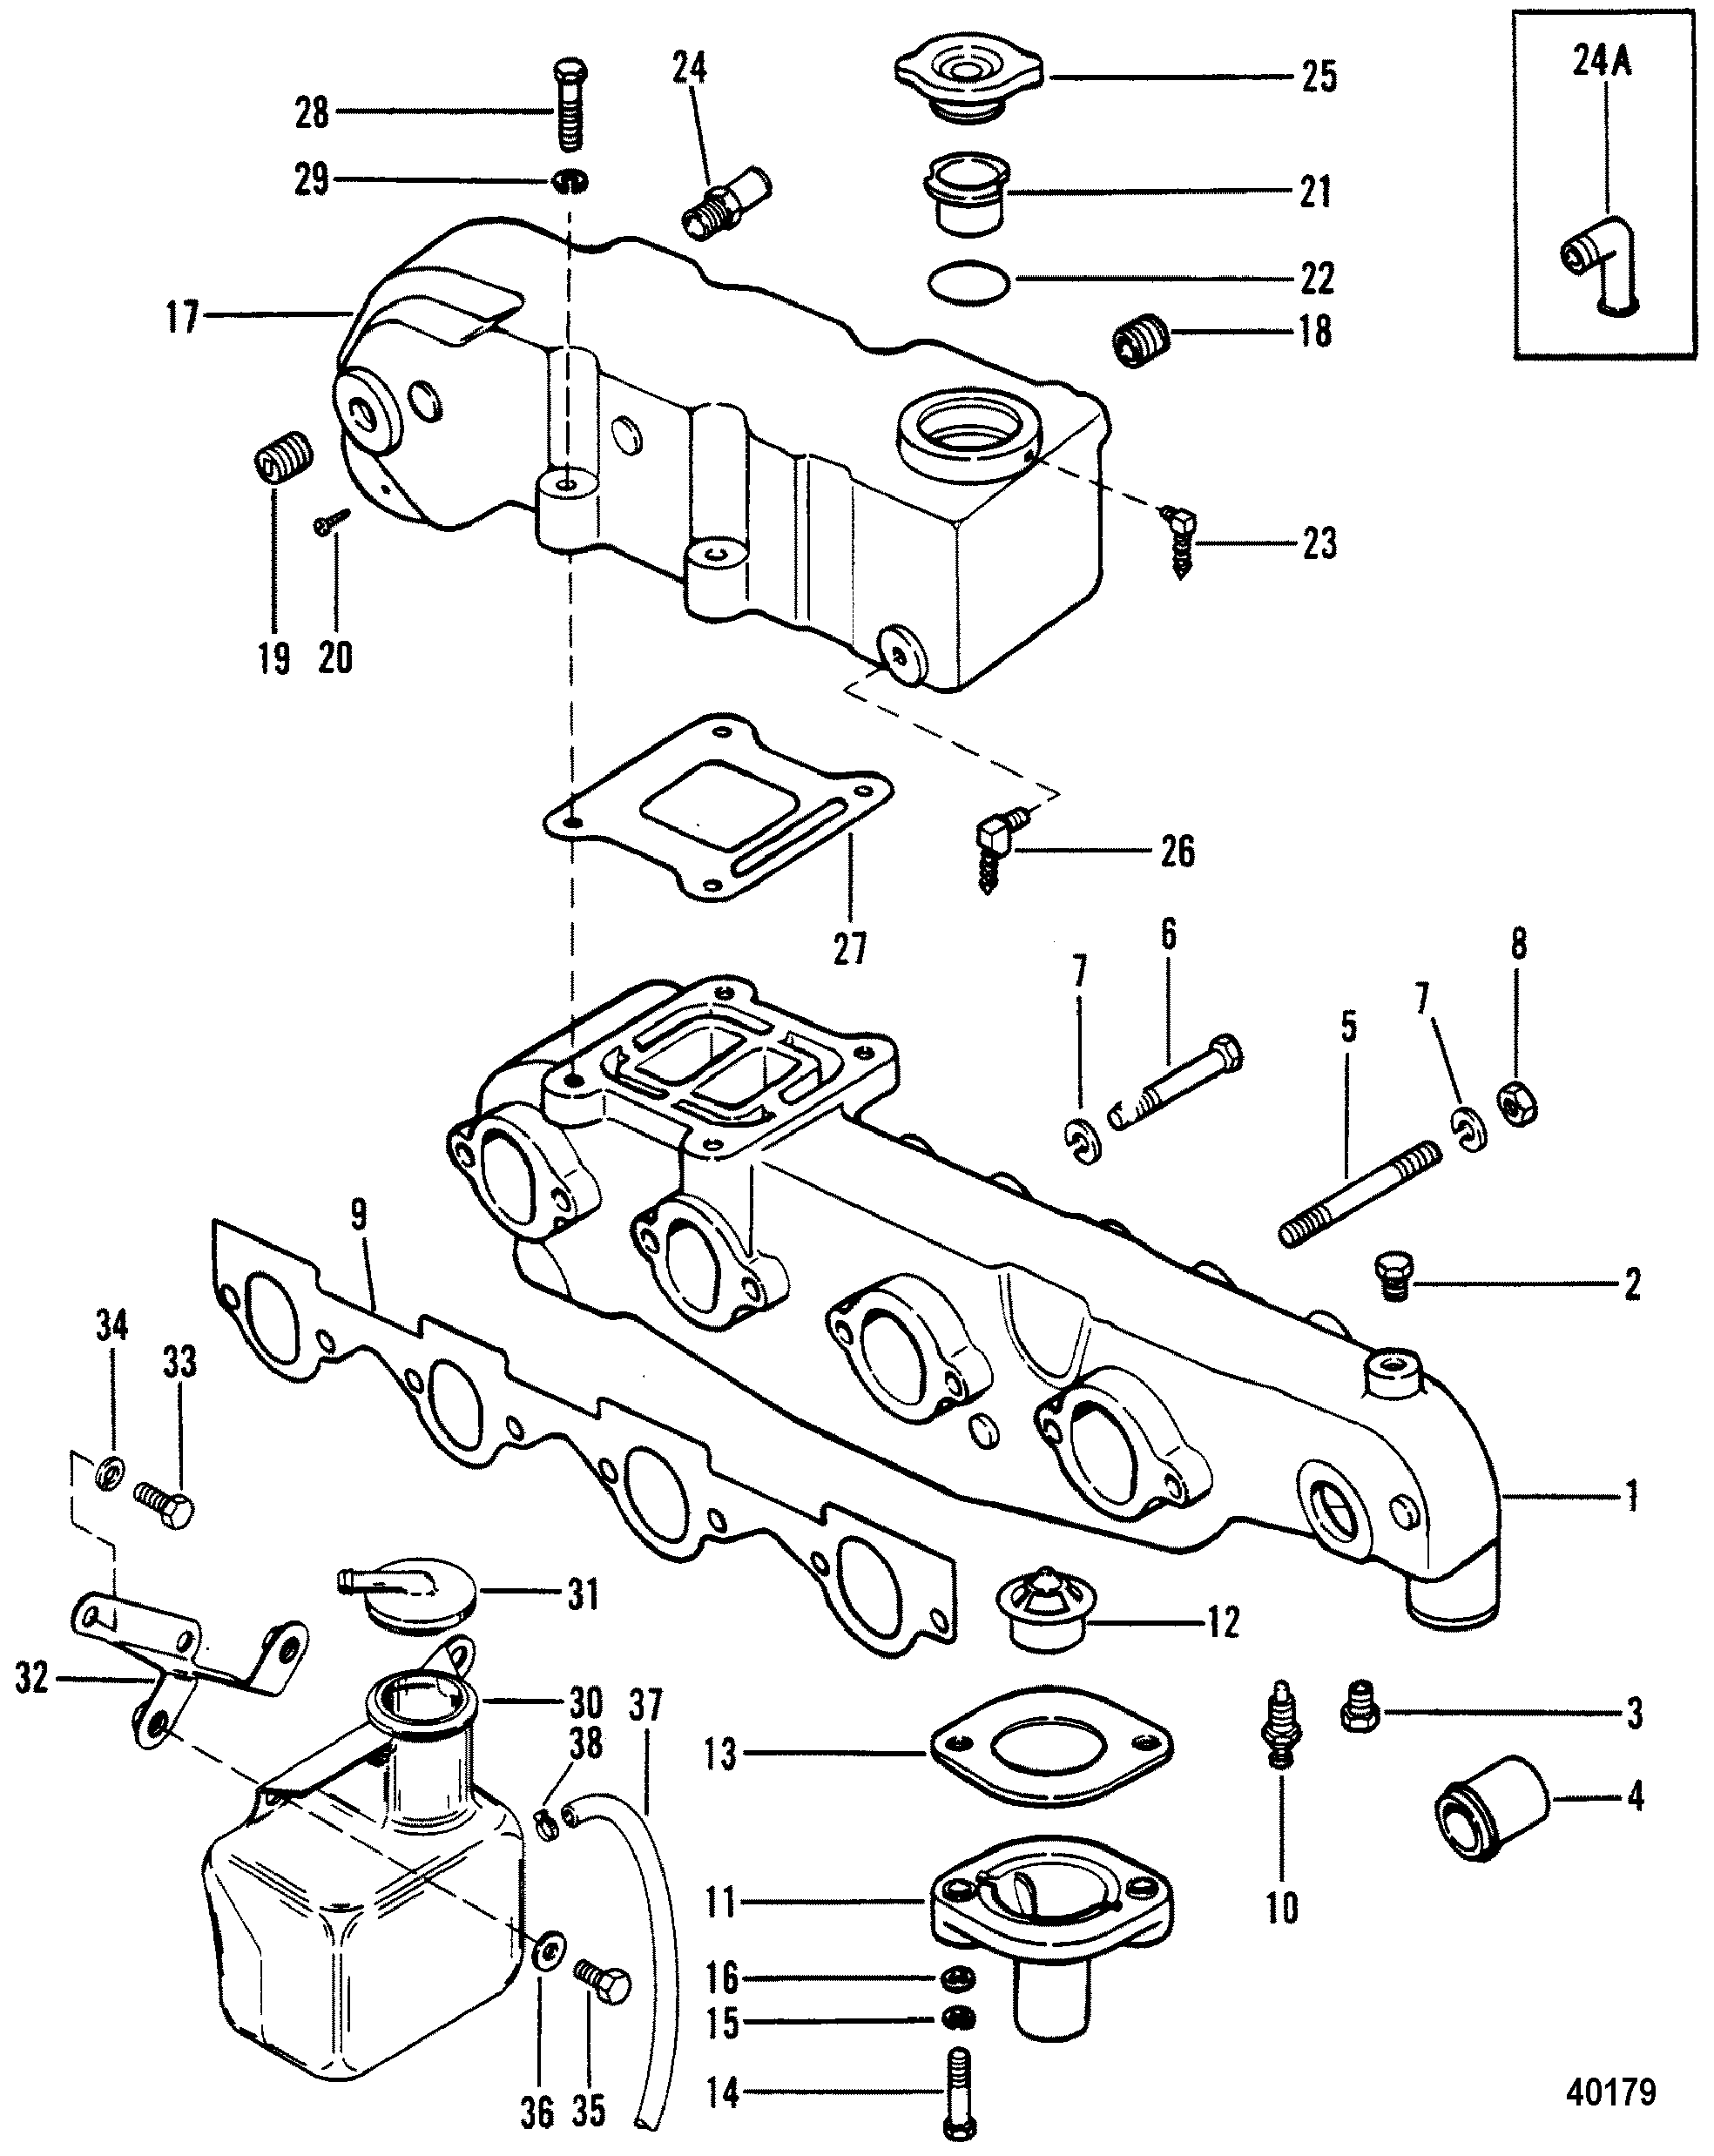 Show product in addition Car Exhaust System Diagram furthermore P27985 BULL X Highline Abgasanlage Alfa Romeo Mito 1 4TB Inkl SBK moreover P 0900c15280251785 also 192988 1. on exhaust pipe clamps